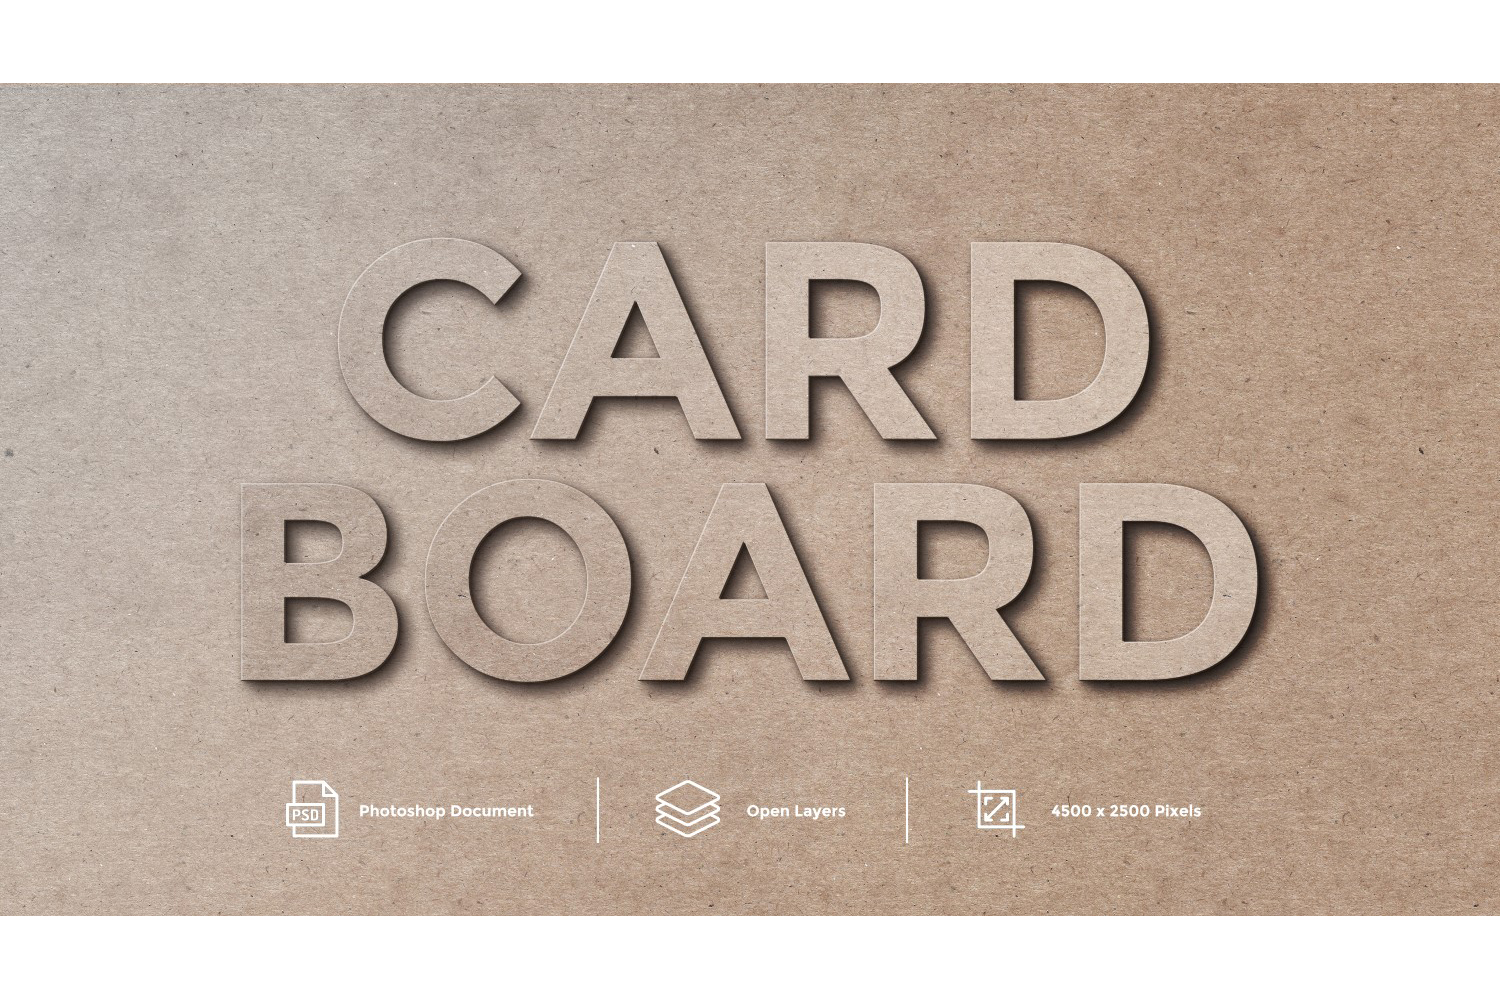 Card Board Text Effect Design Photoshop Layer Style Effect example image 1